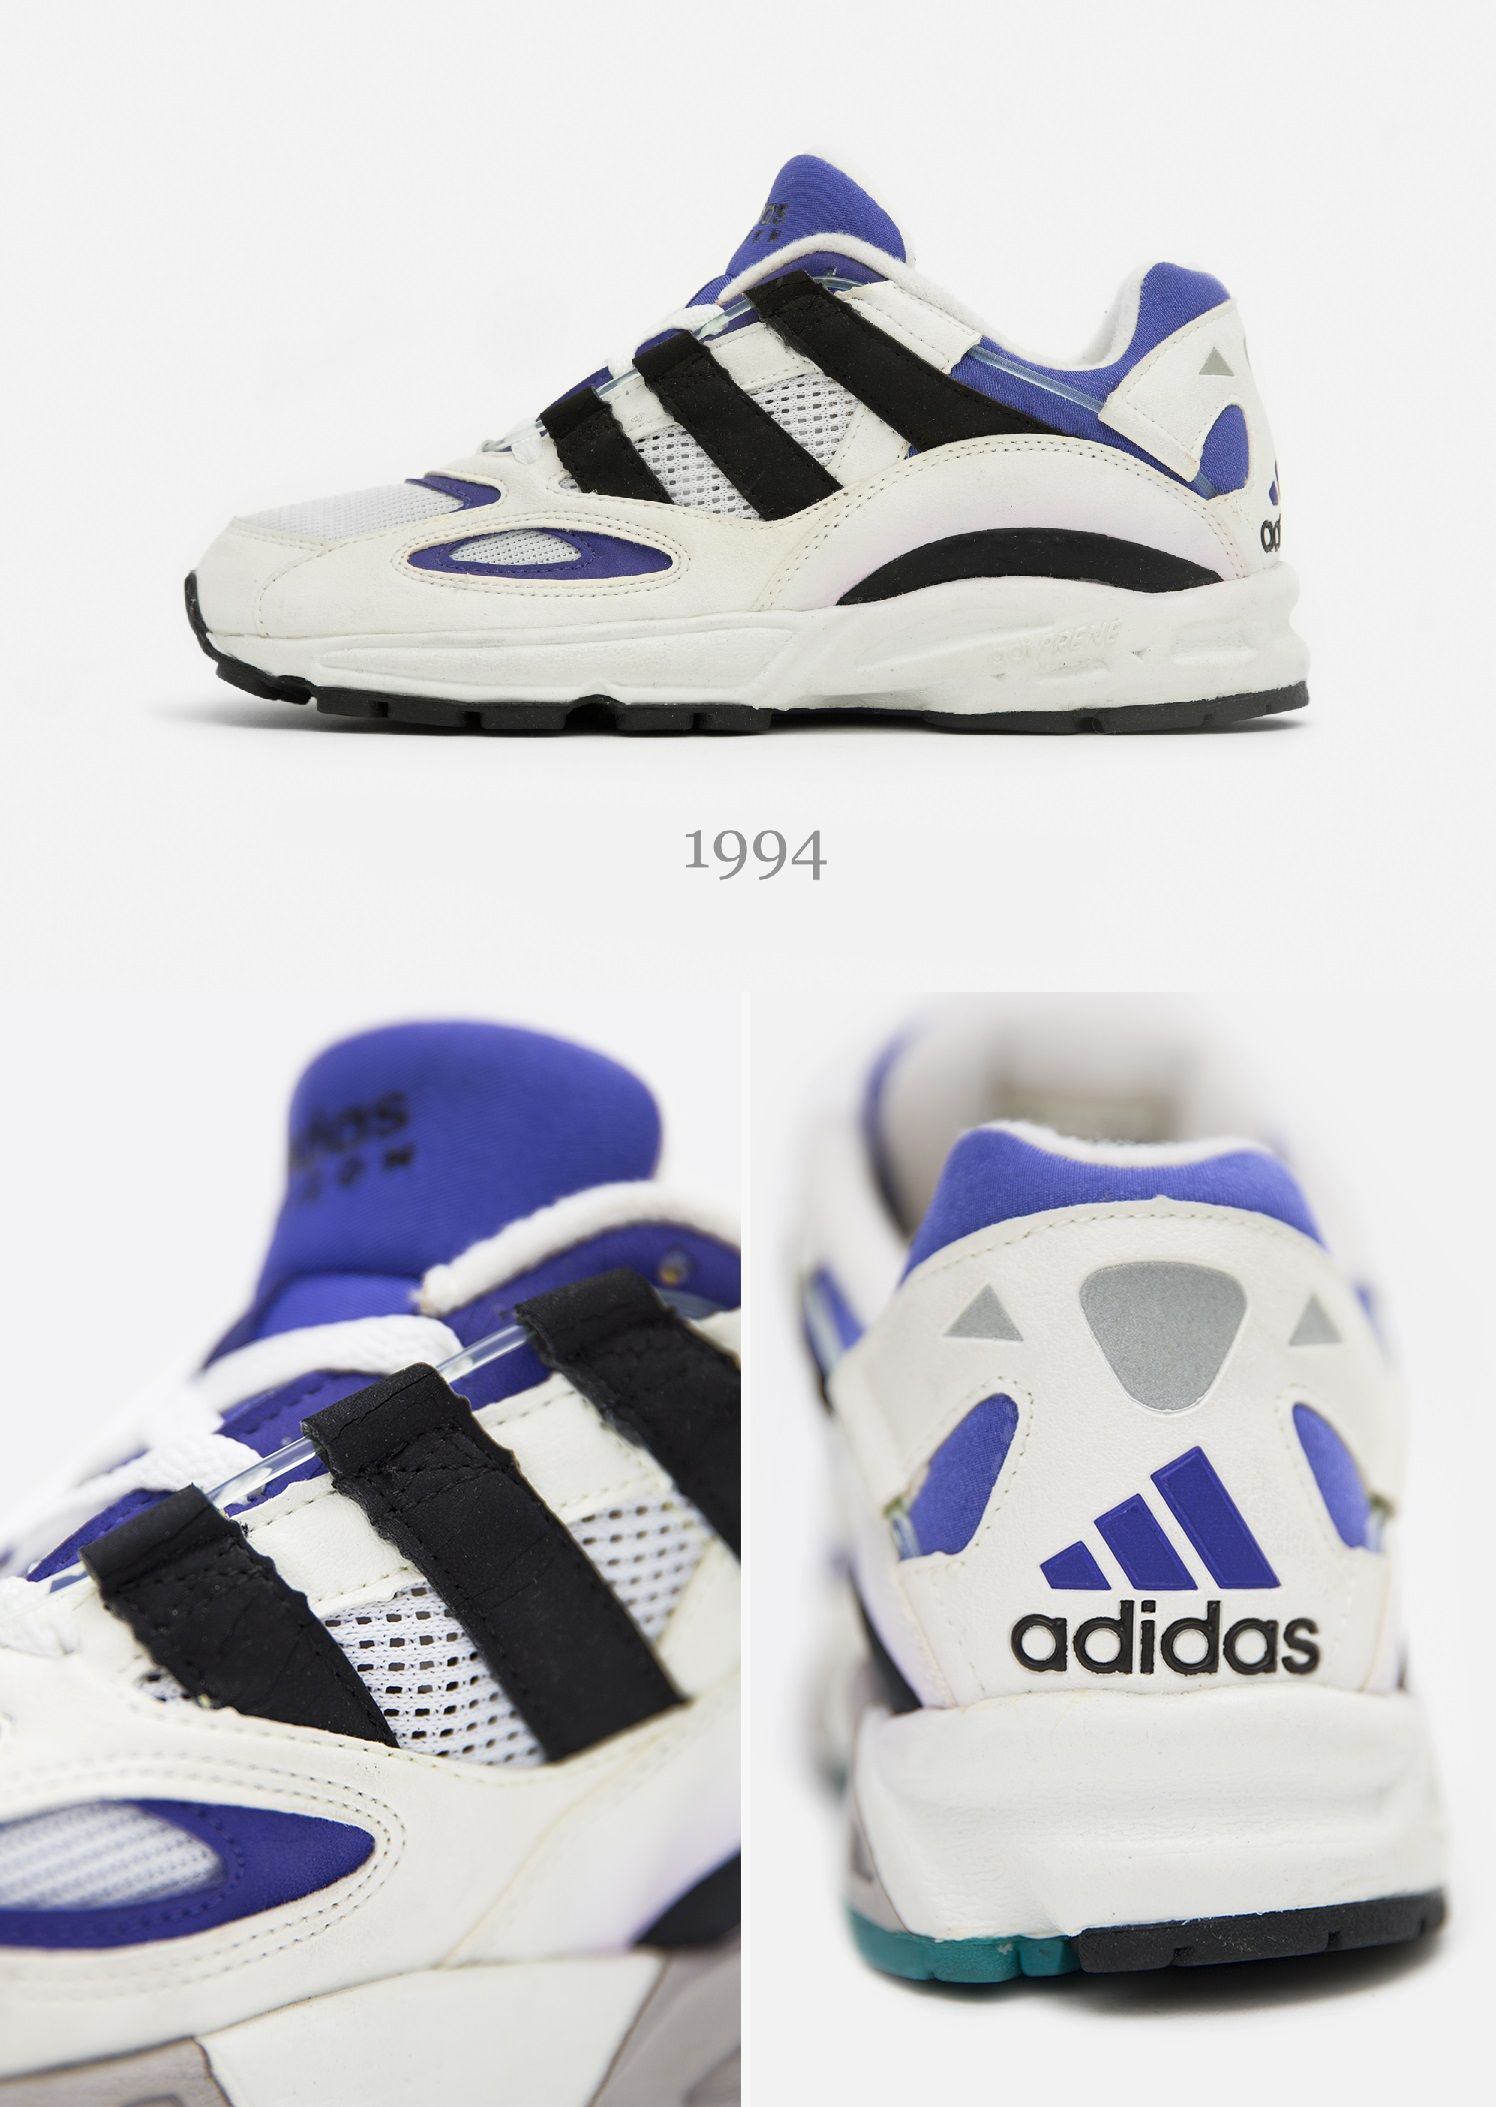 adidas Lexicon (1994) | Sneakin' in 2019 | Sneakers, Vintage